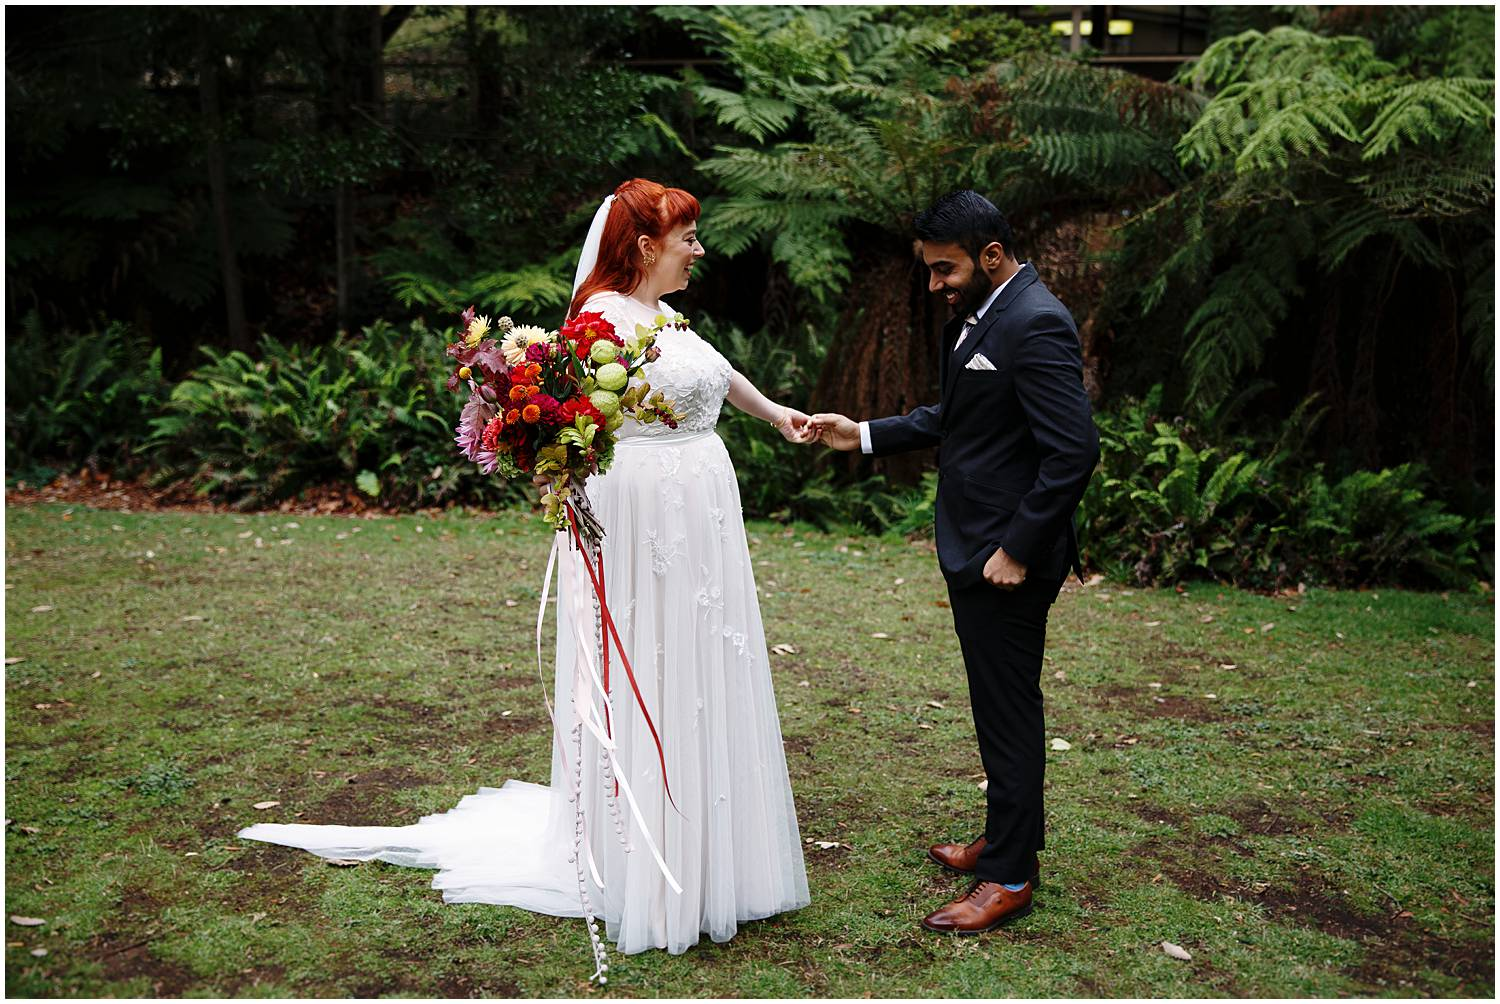 colourful autumn wedding melbourne007.jpg